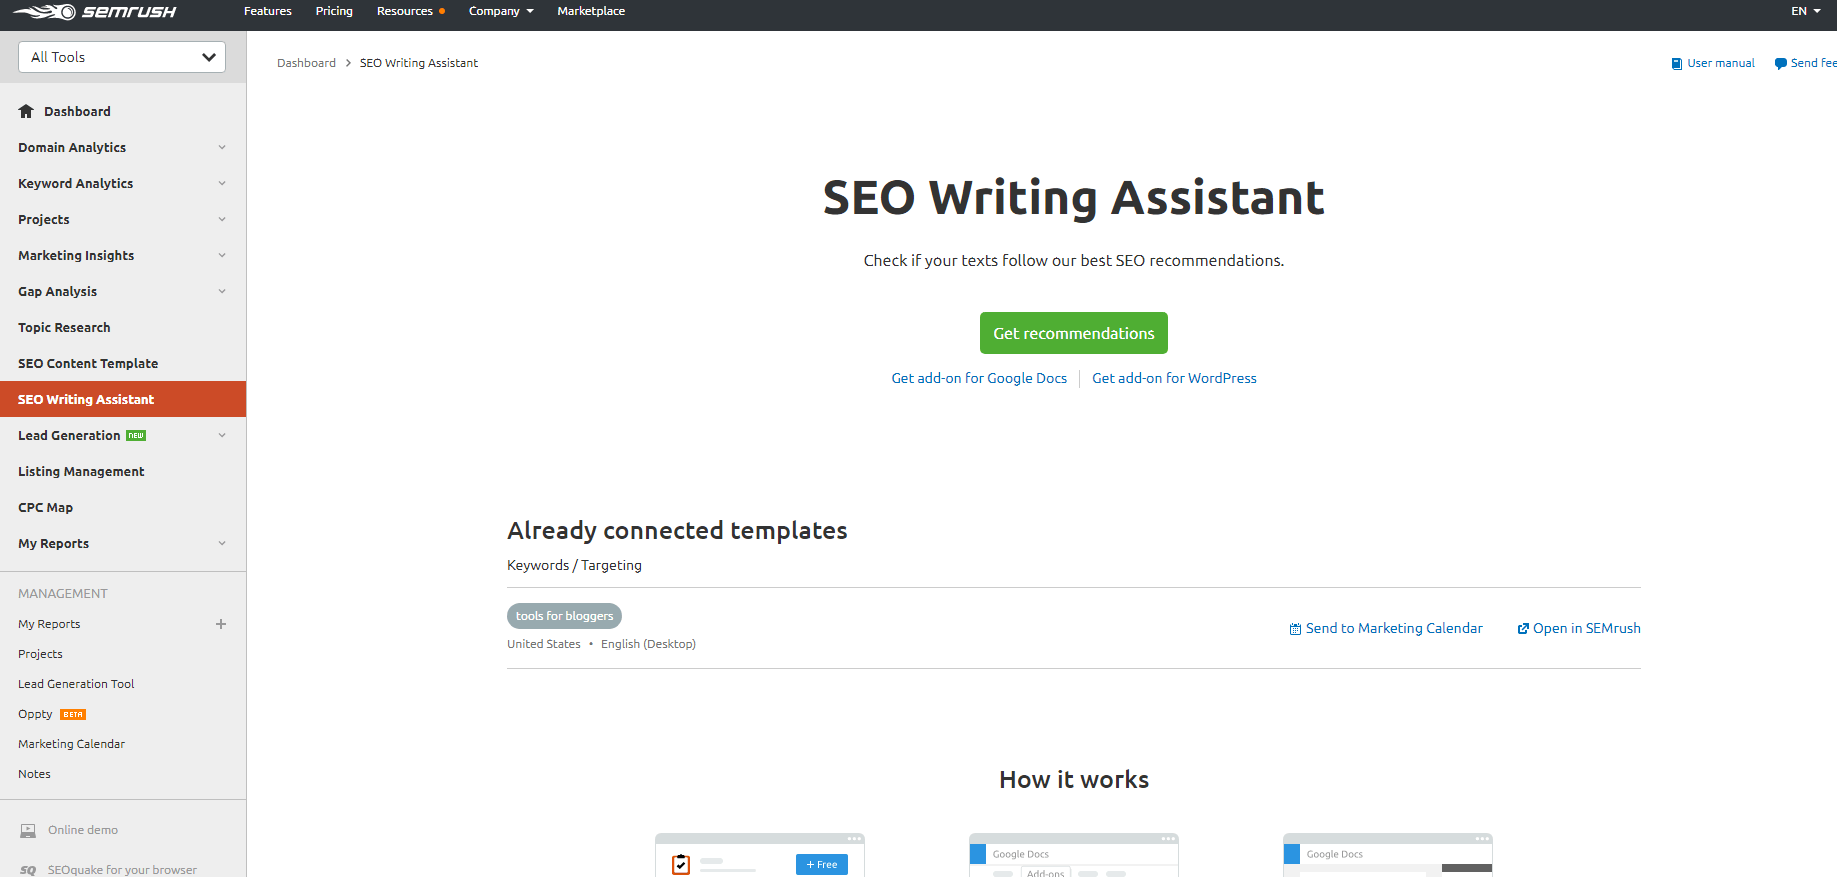 semrush-seo-writting-assistant-1